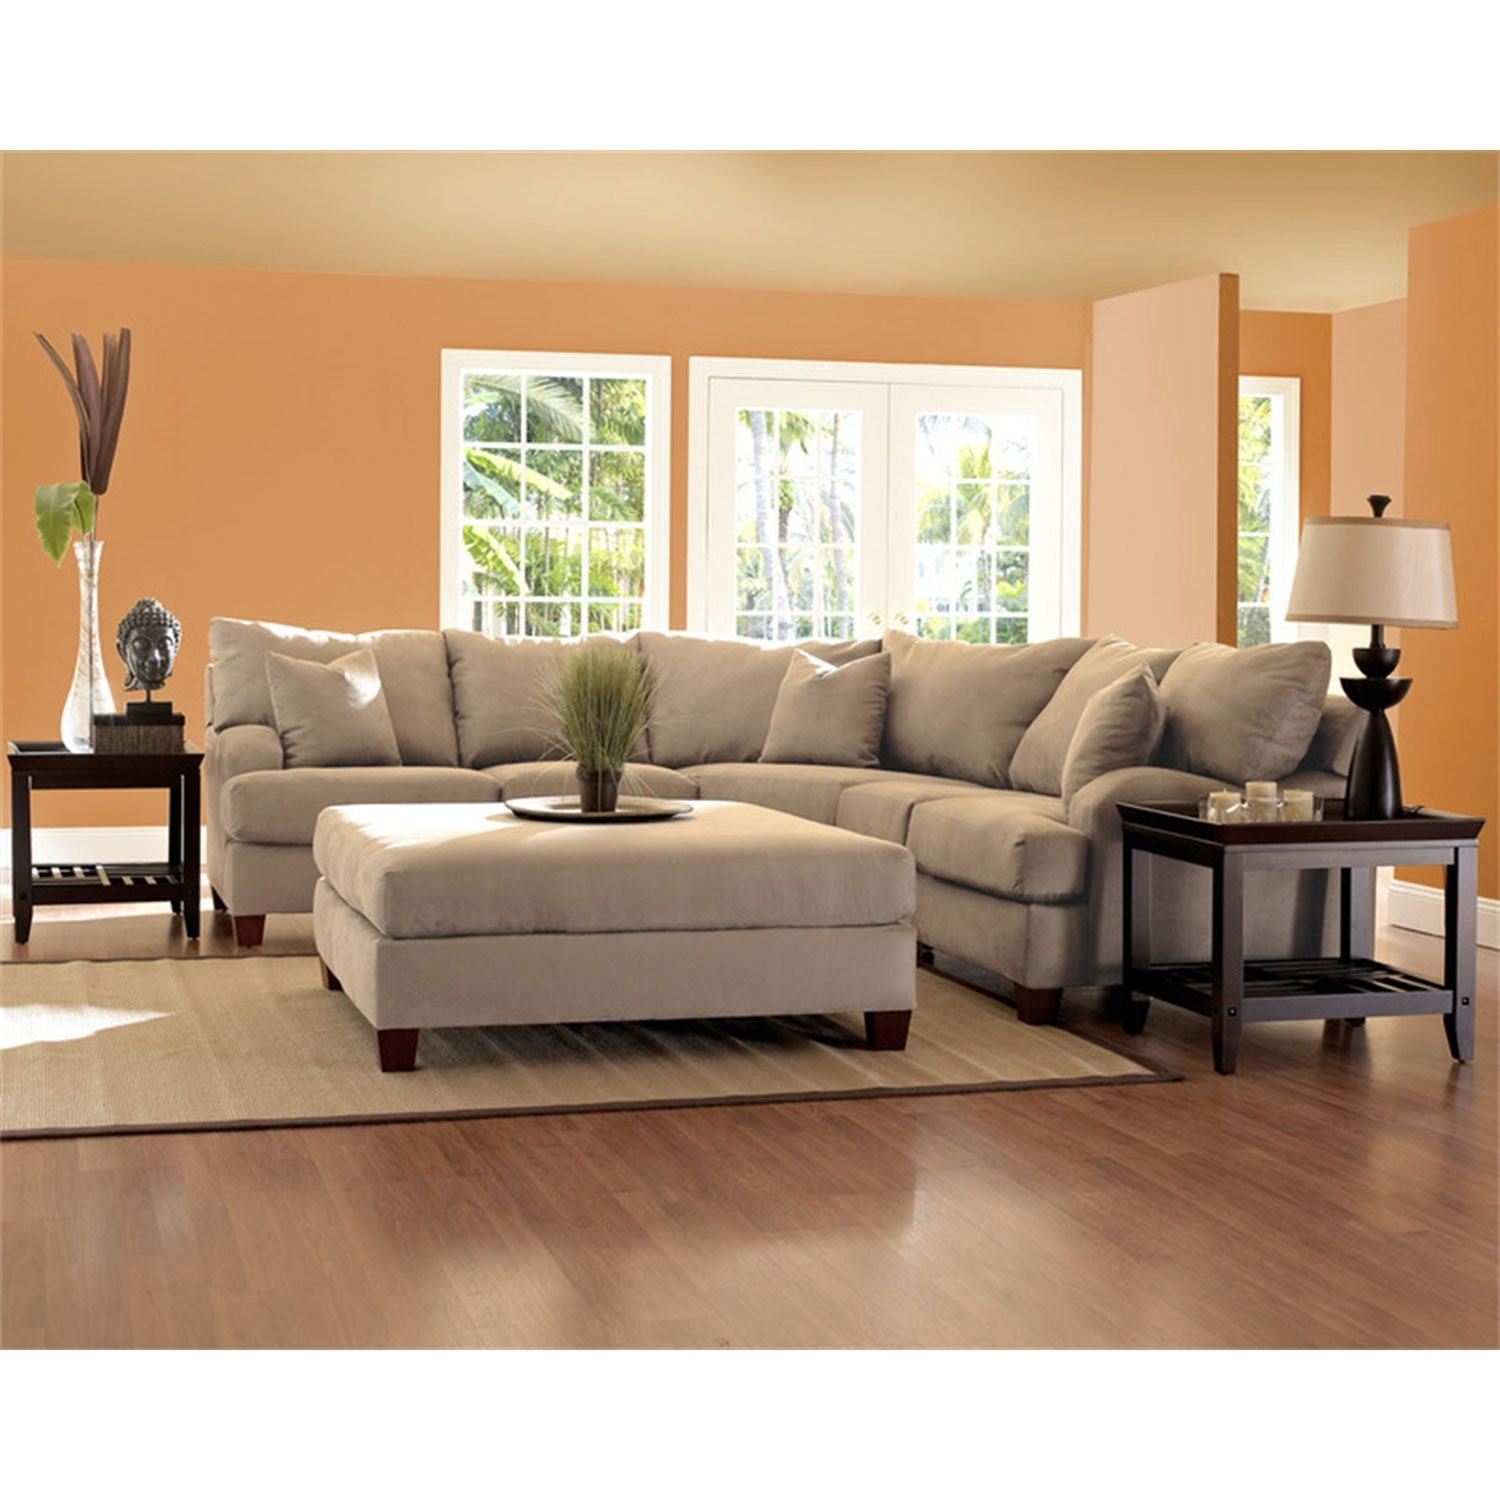 Canyon Beige Sectional Sectional Sofas Sofas & Sectionals Living With Beige Sectional Sofas (Image 4 of 10)